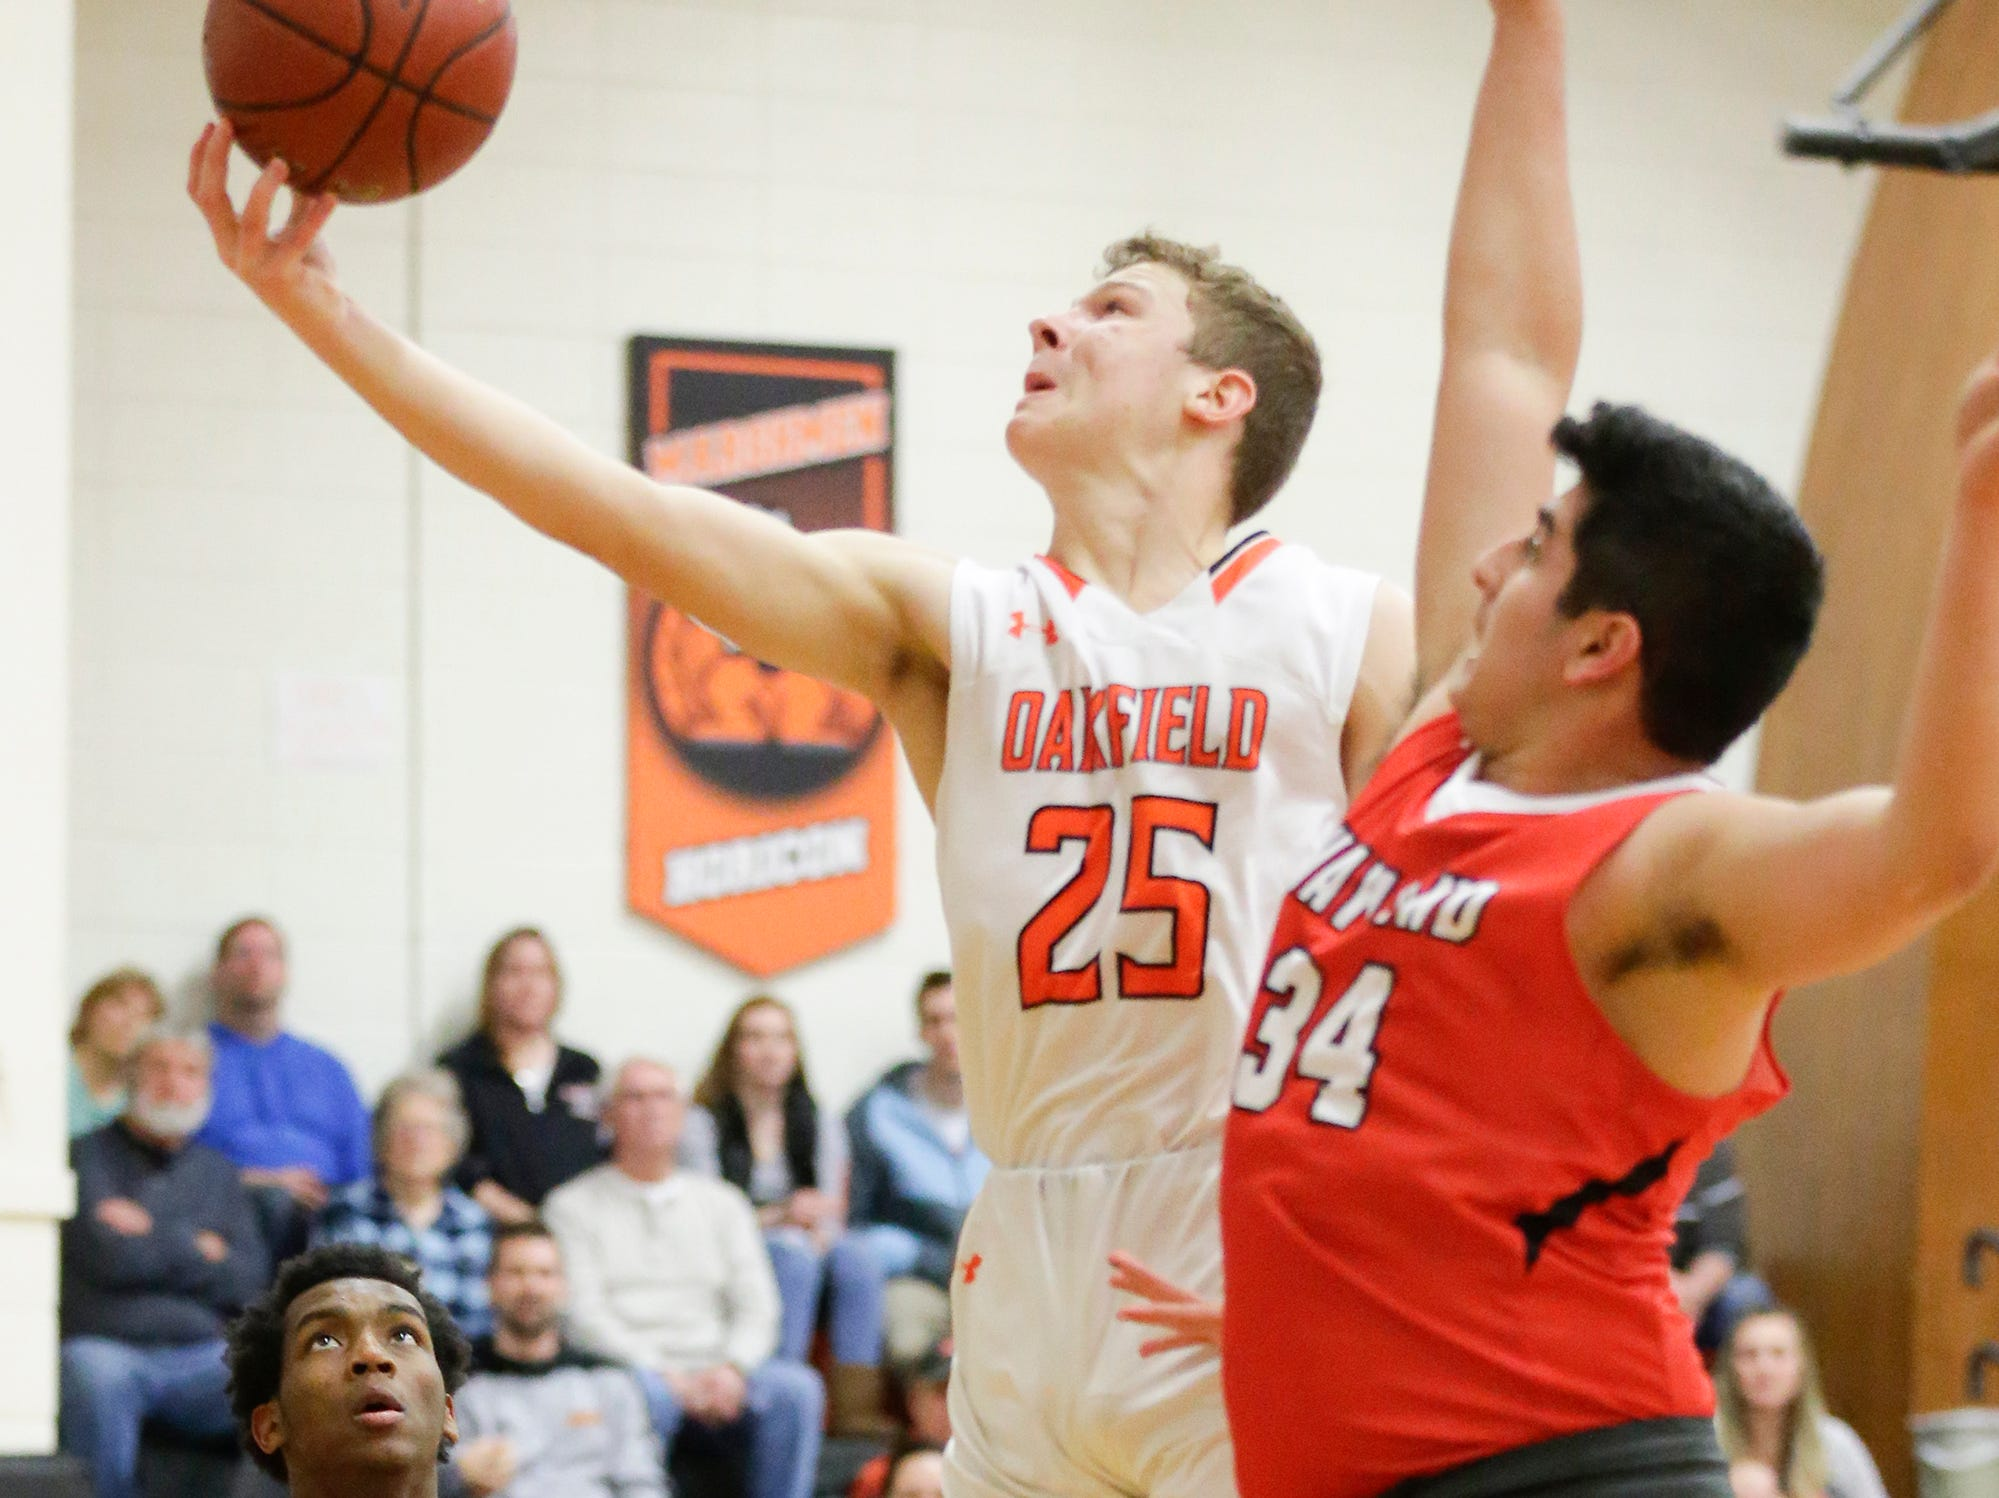 Oakfield High School boys basketball's Grant Bass goes up for a basket against Wayland Academy January 11, 2019 during their game in Oakfield. Oakfield won the game 56-48. Doug Raflik/USA TODAY NETWORK-Wisconsin